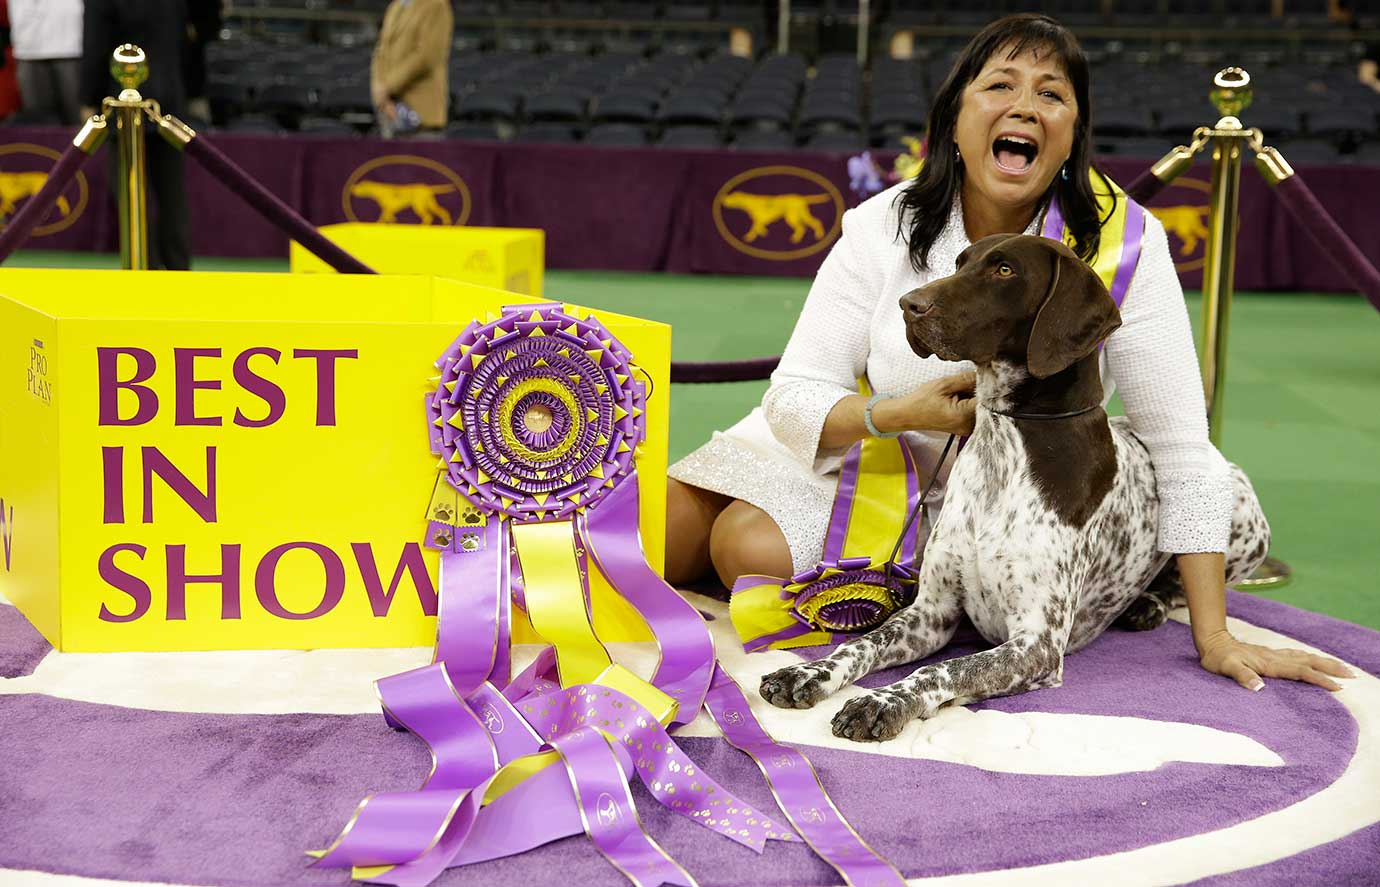 Valerie Nunes-Atkinson and C J,, a German shorthaired pointer, winning best in show at the140th Westminster Kennel Club dog show.